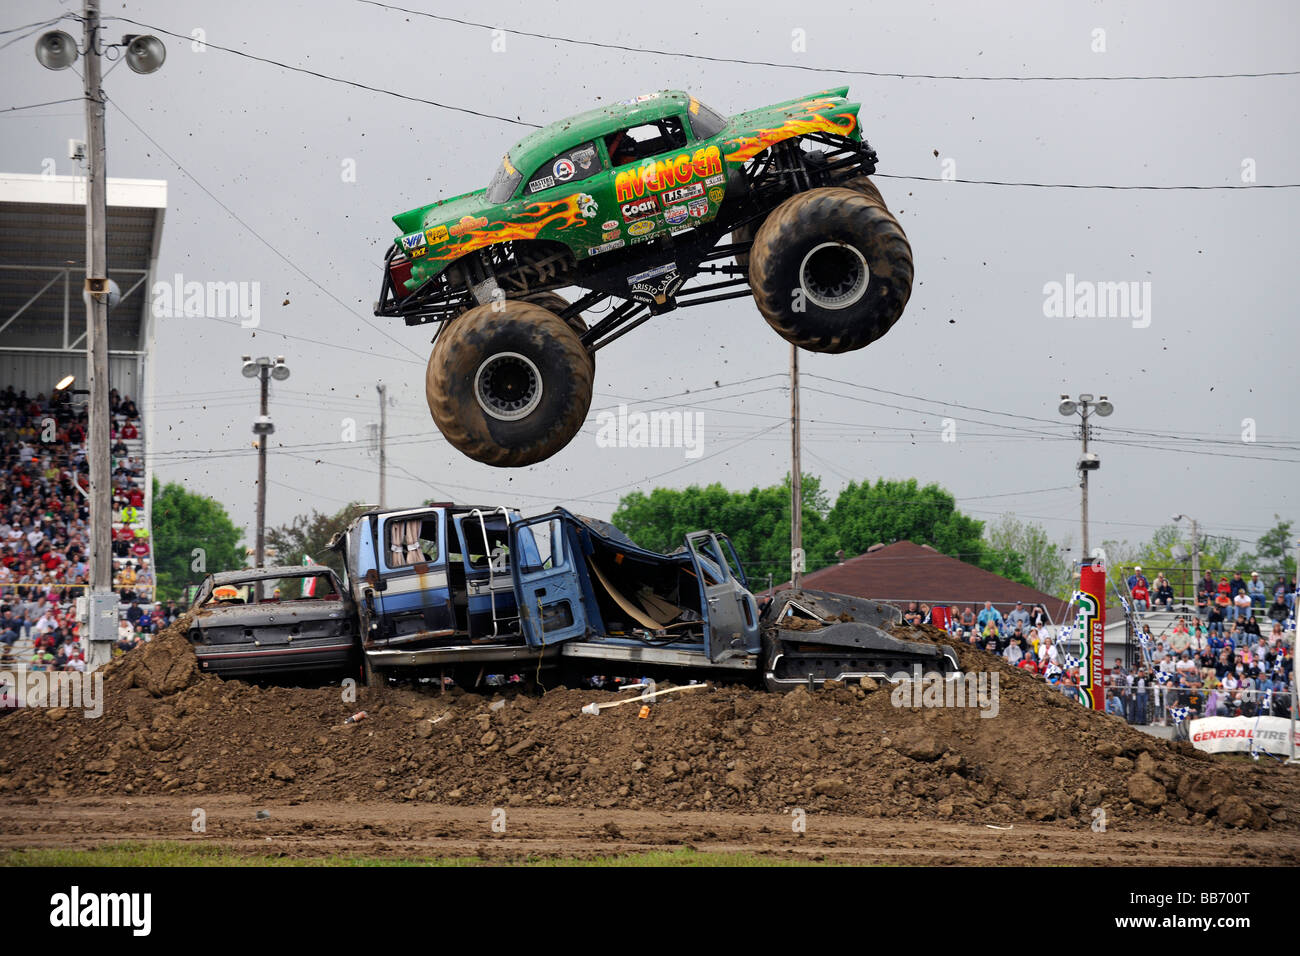 Monster Truck Jumping Crushed Cars In A Race Stock Photo Royalty